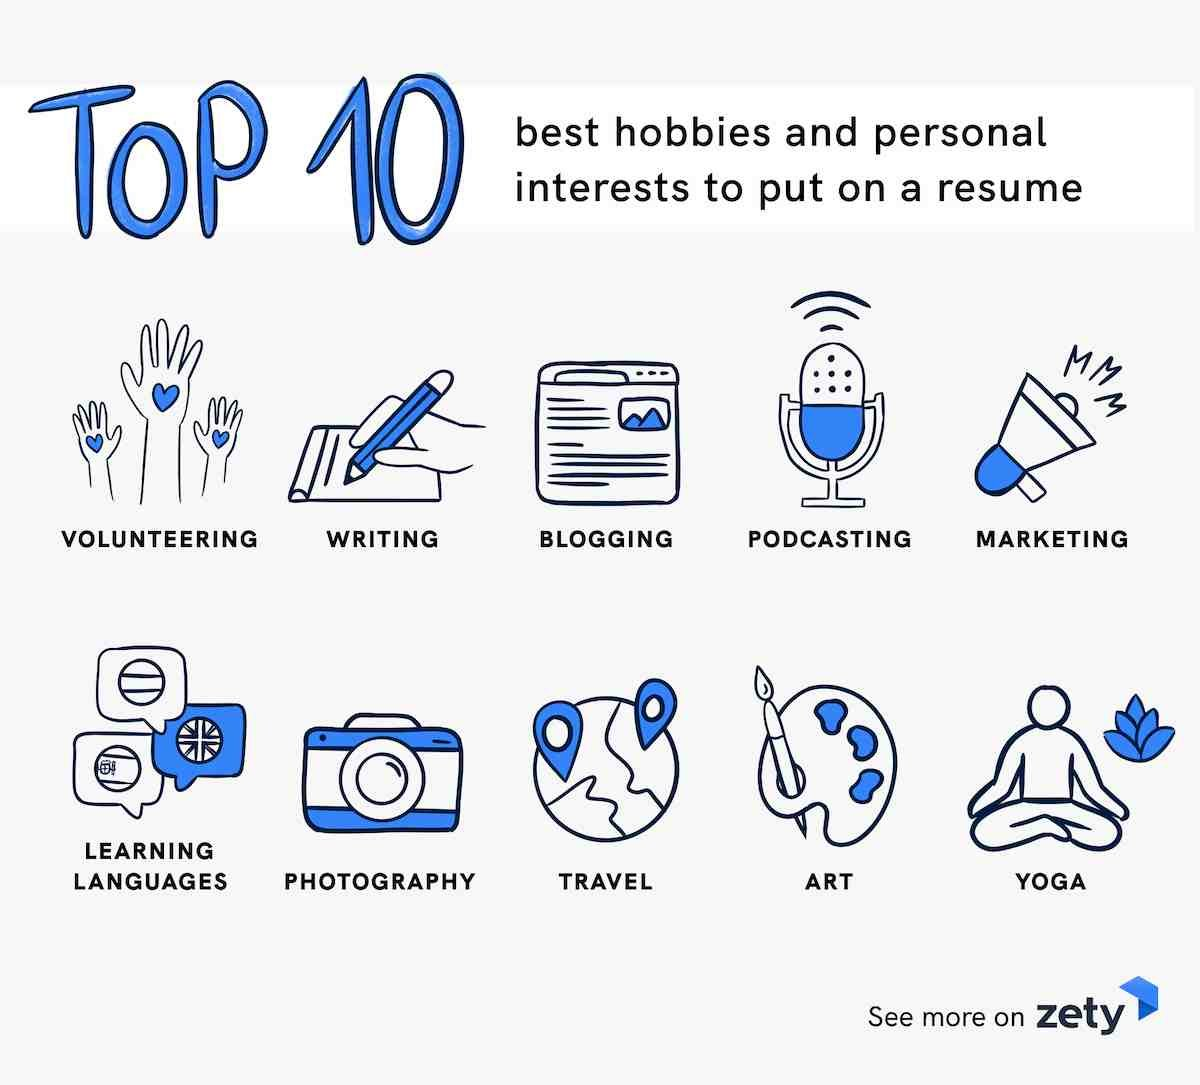 of hobbies and interests for resume cv examples top best personal to put on orthopedic Resume Hobbies Interests Resume Examples